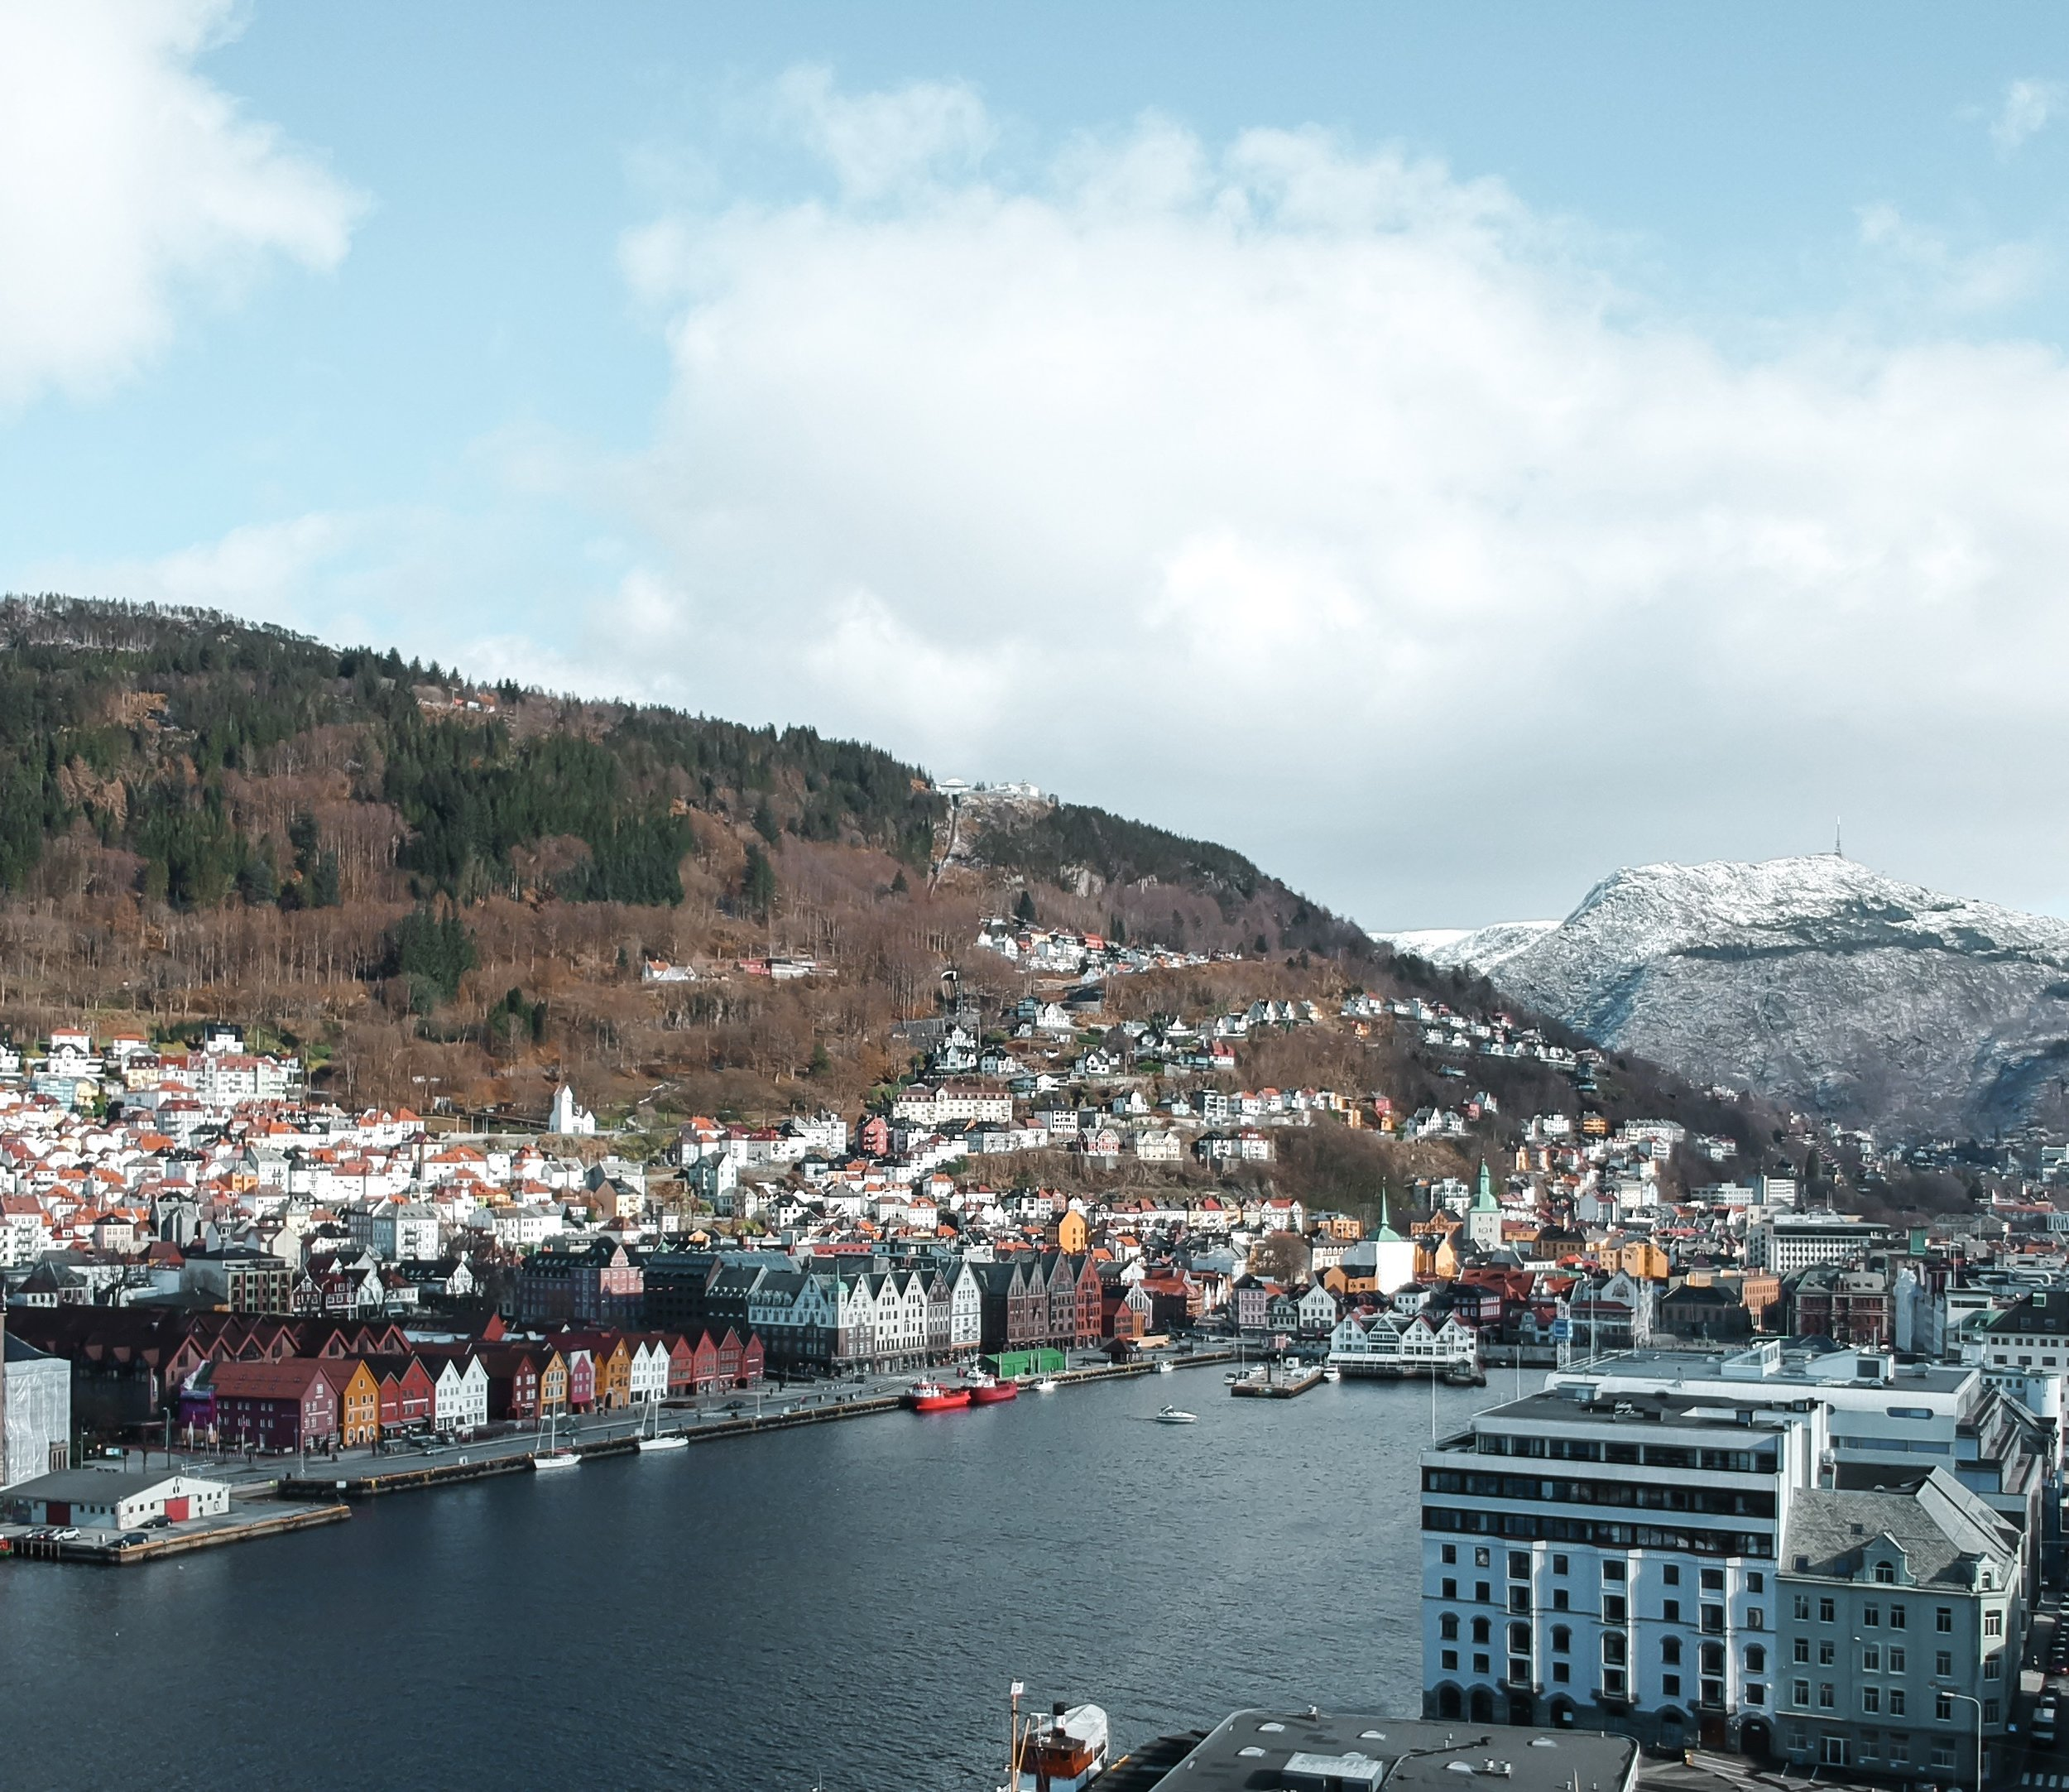 One of the few drone shots I captured of Bergen with Bryggen in the foreground